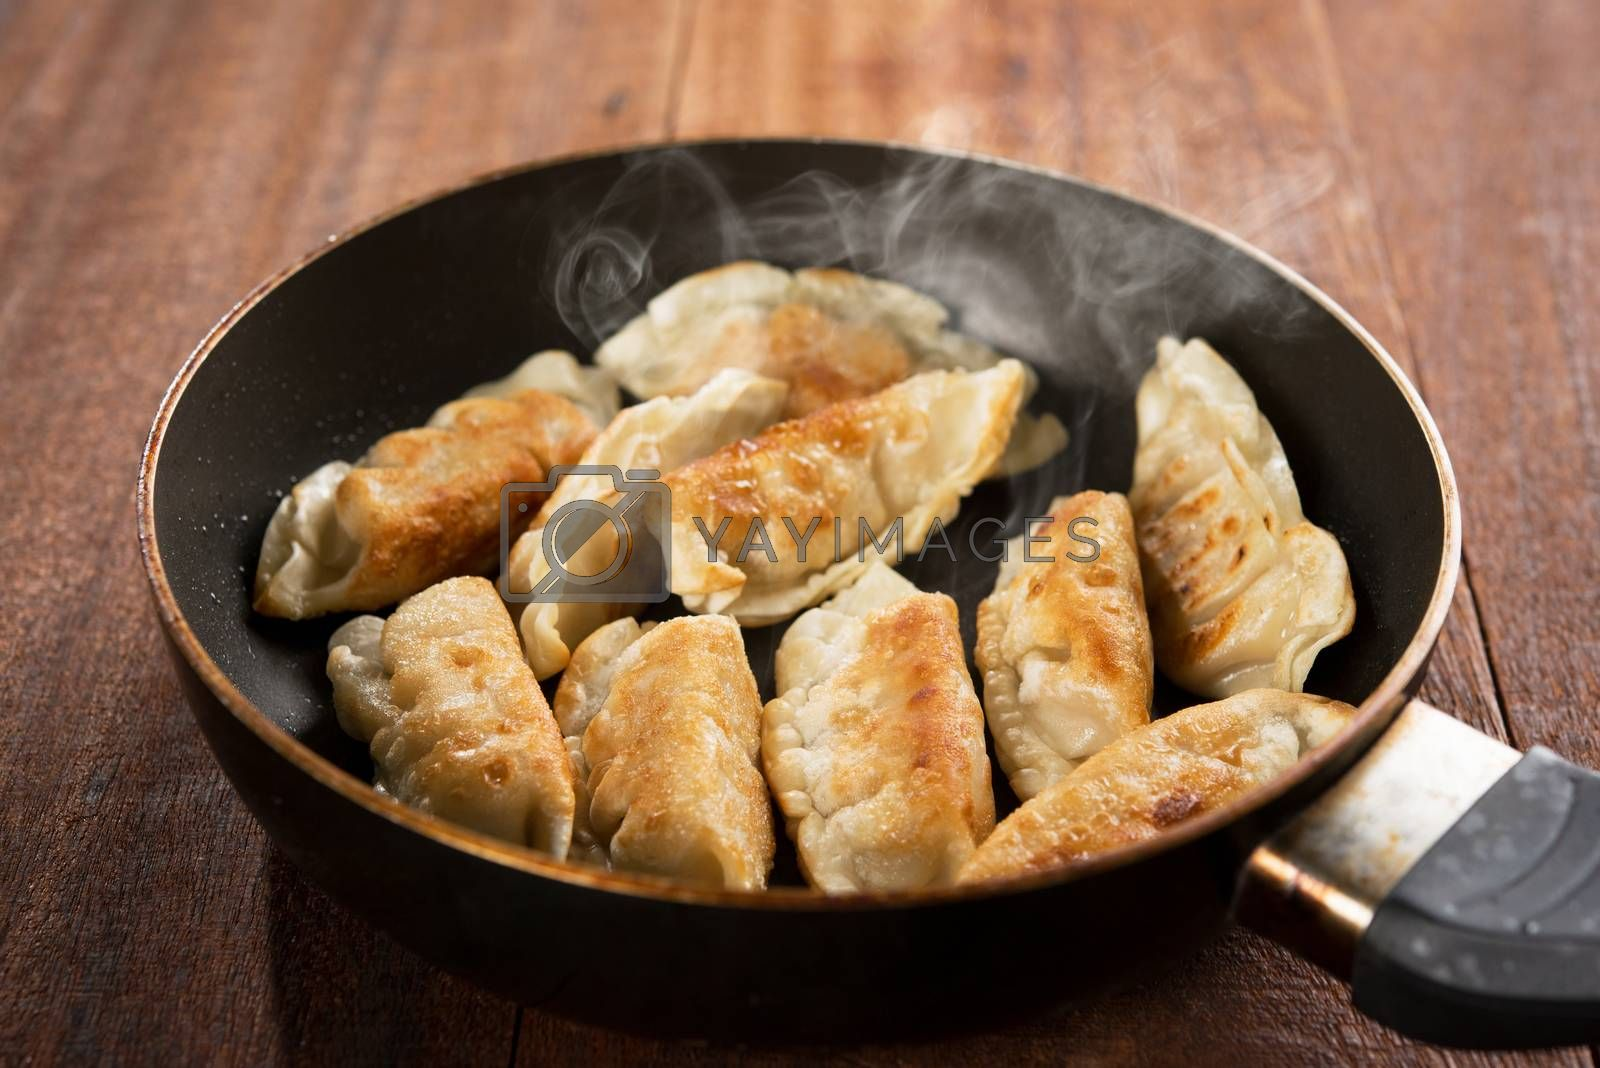 Close up cooking fried dumplings in a frying pan. Chinese food with hot steams, on rustic vintage wooden background.